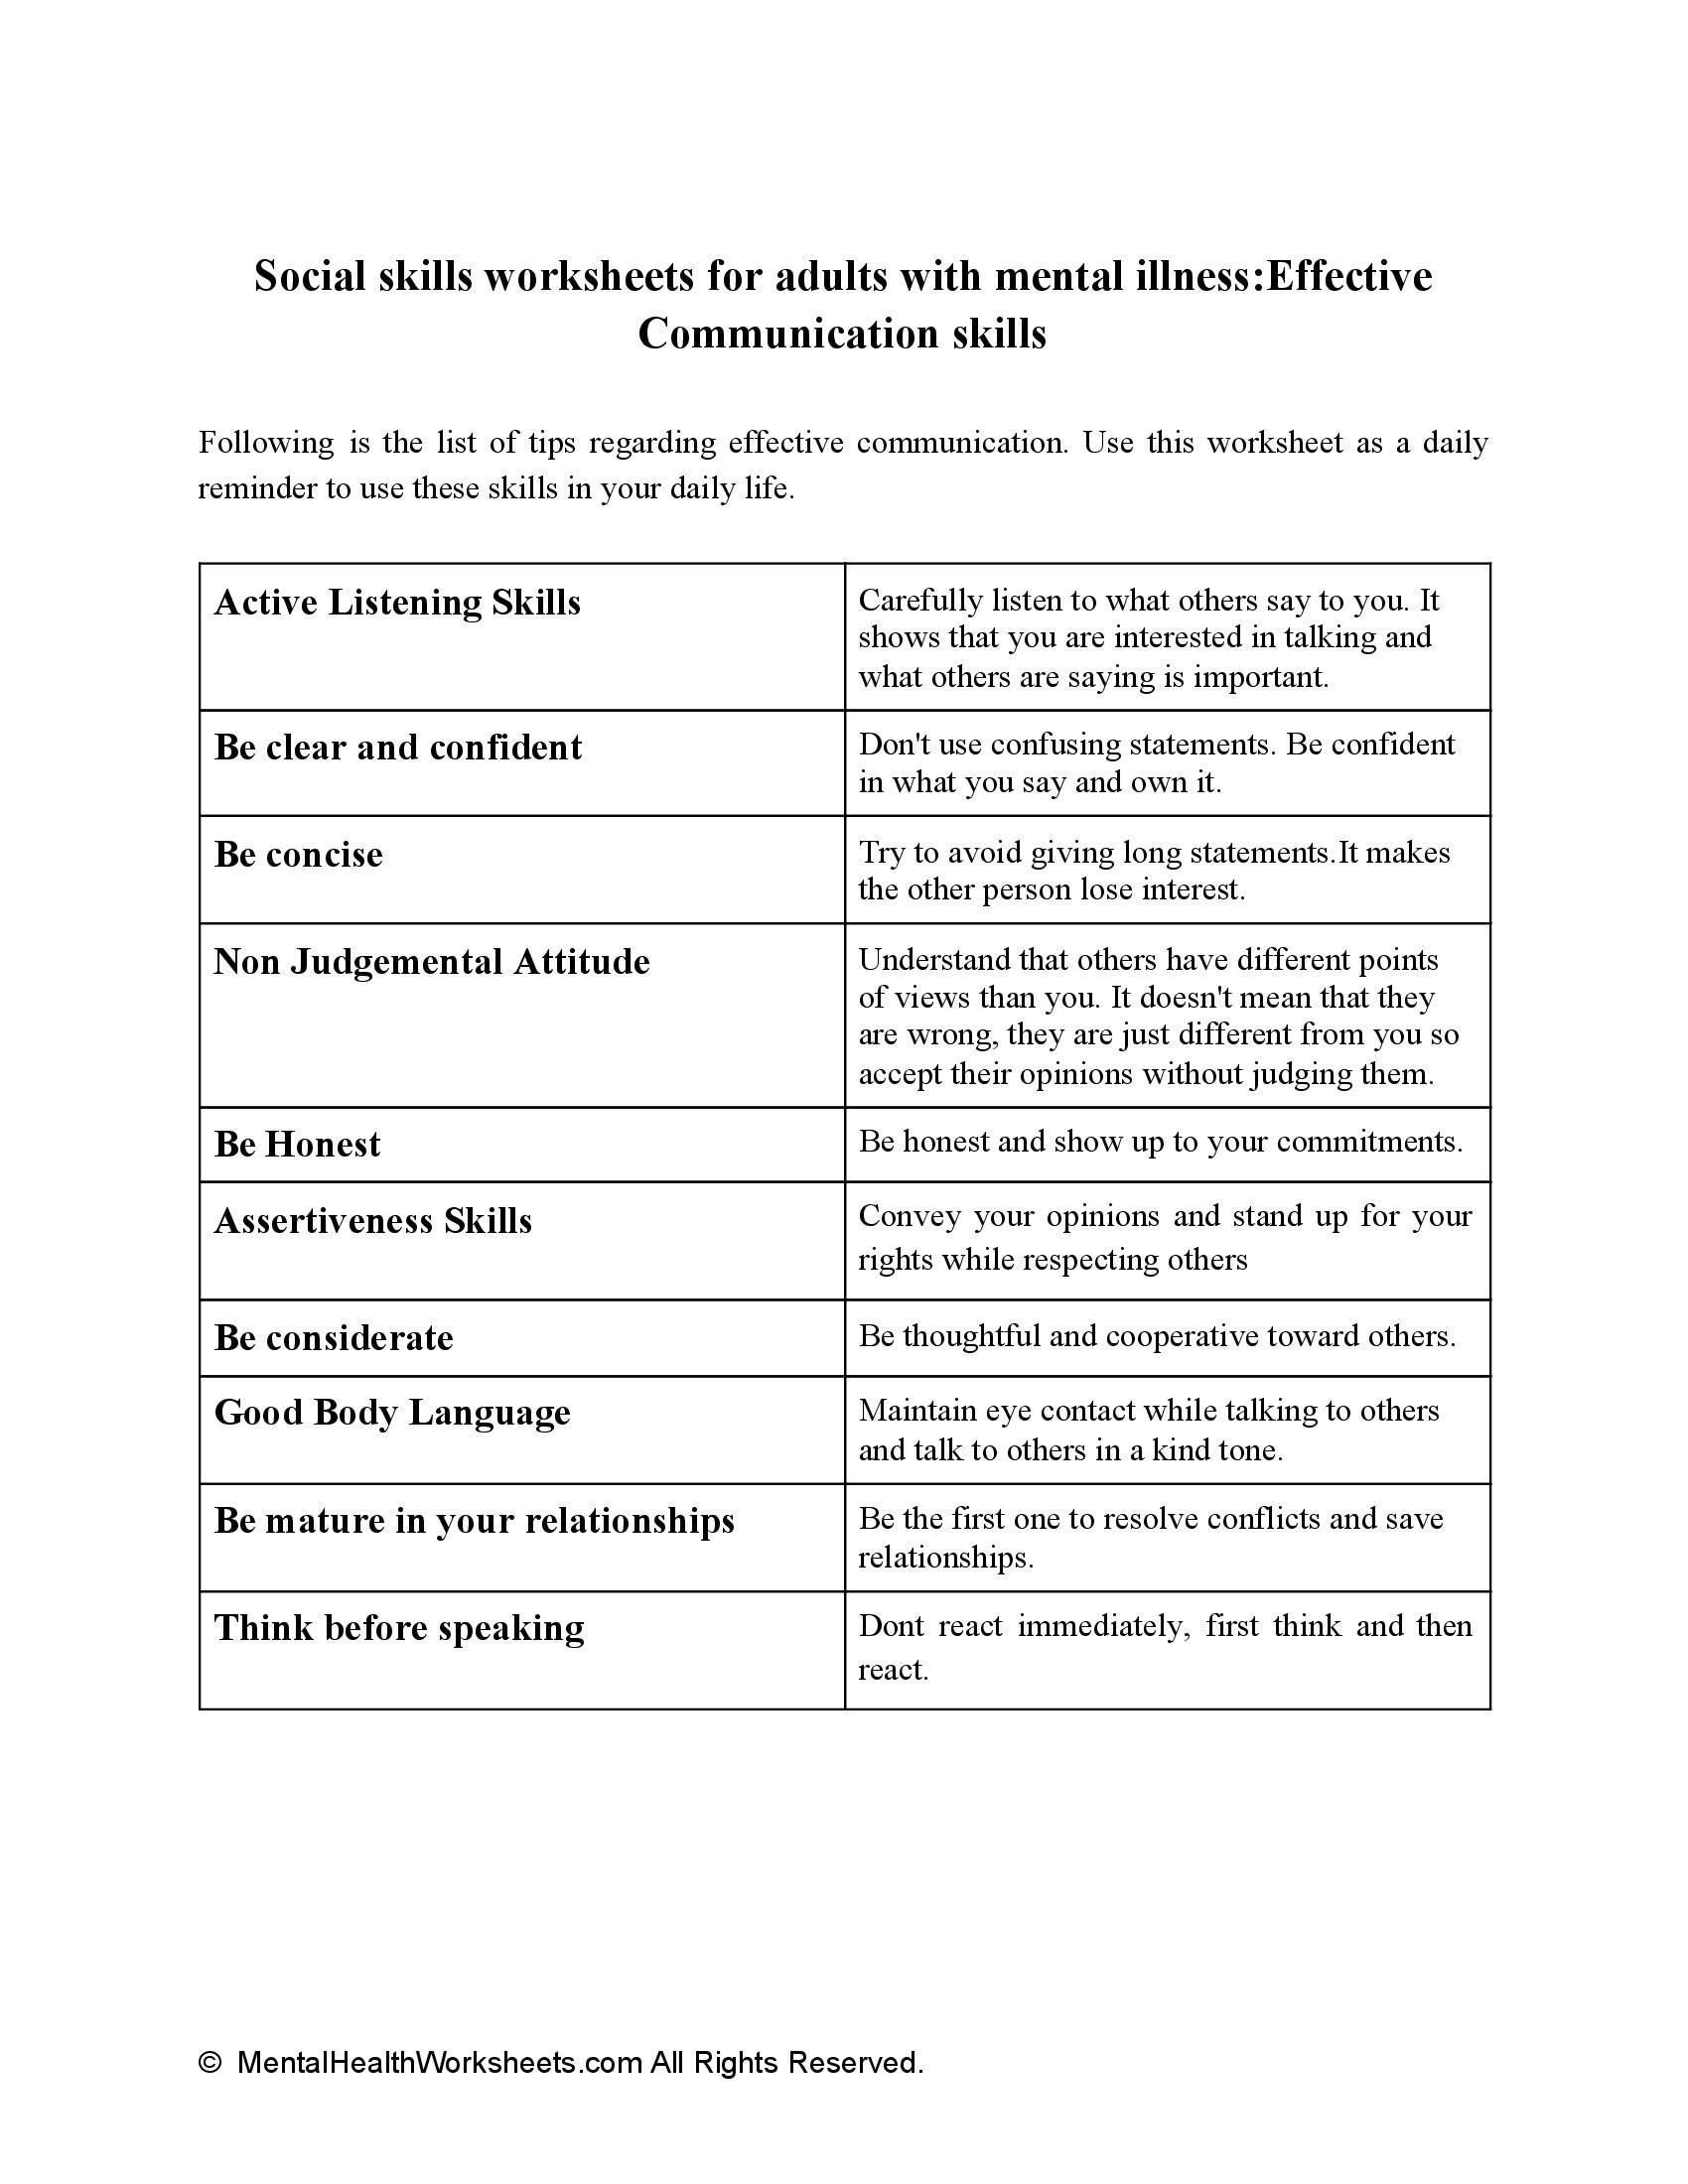 Social skills worksheets for adults with mental illness:Effective Communication skills